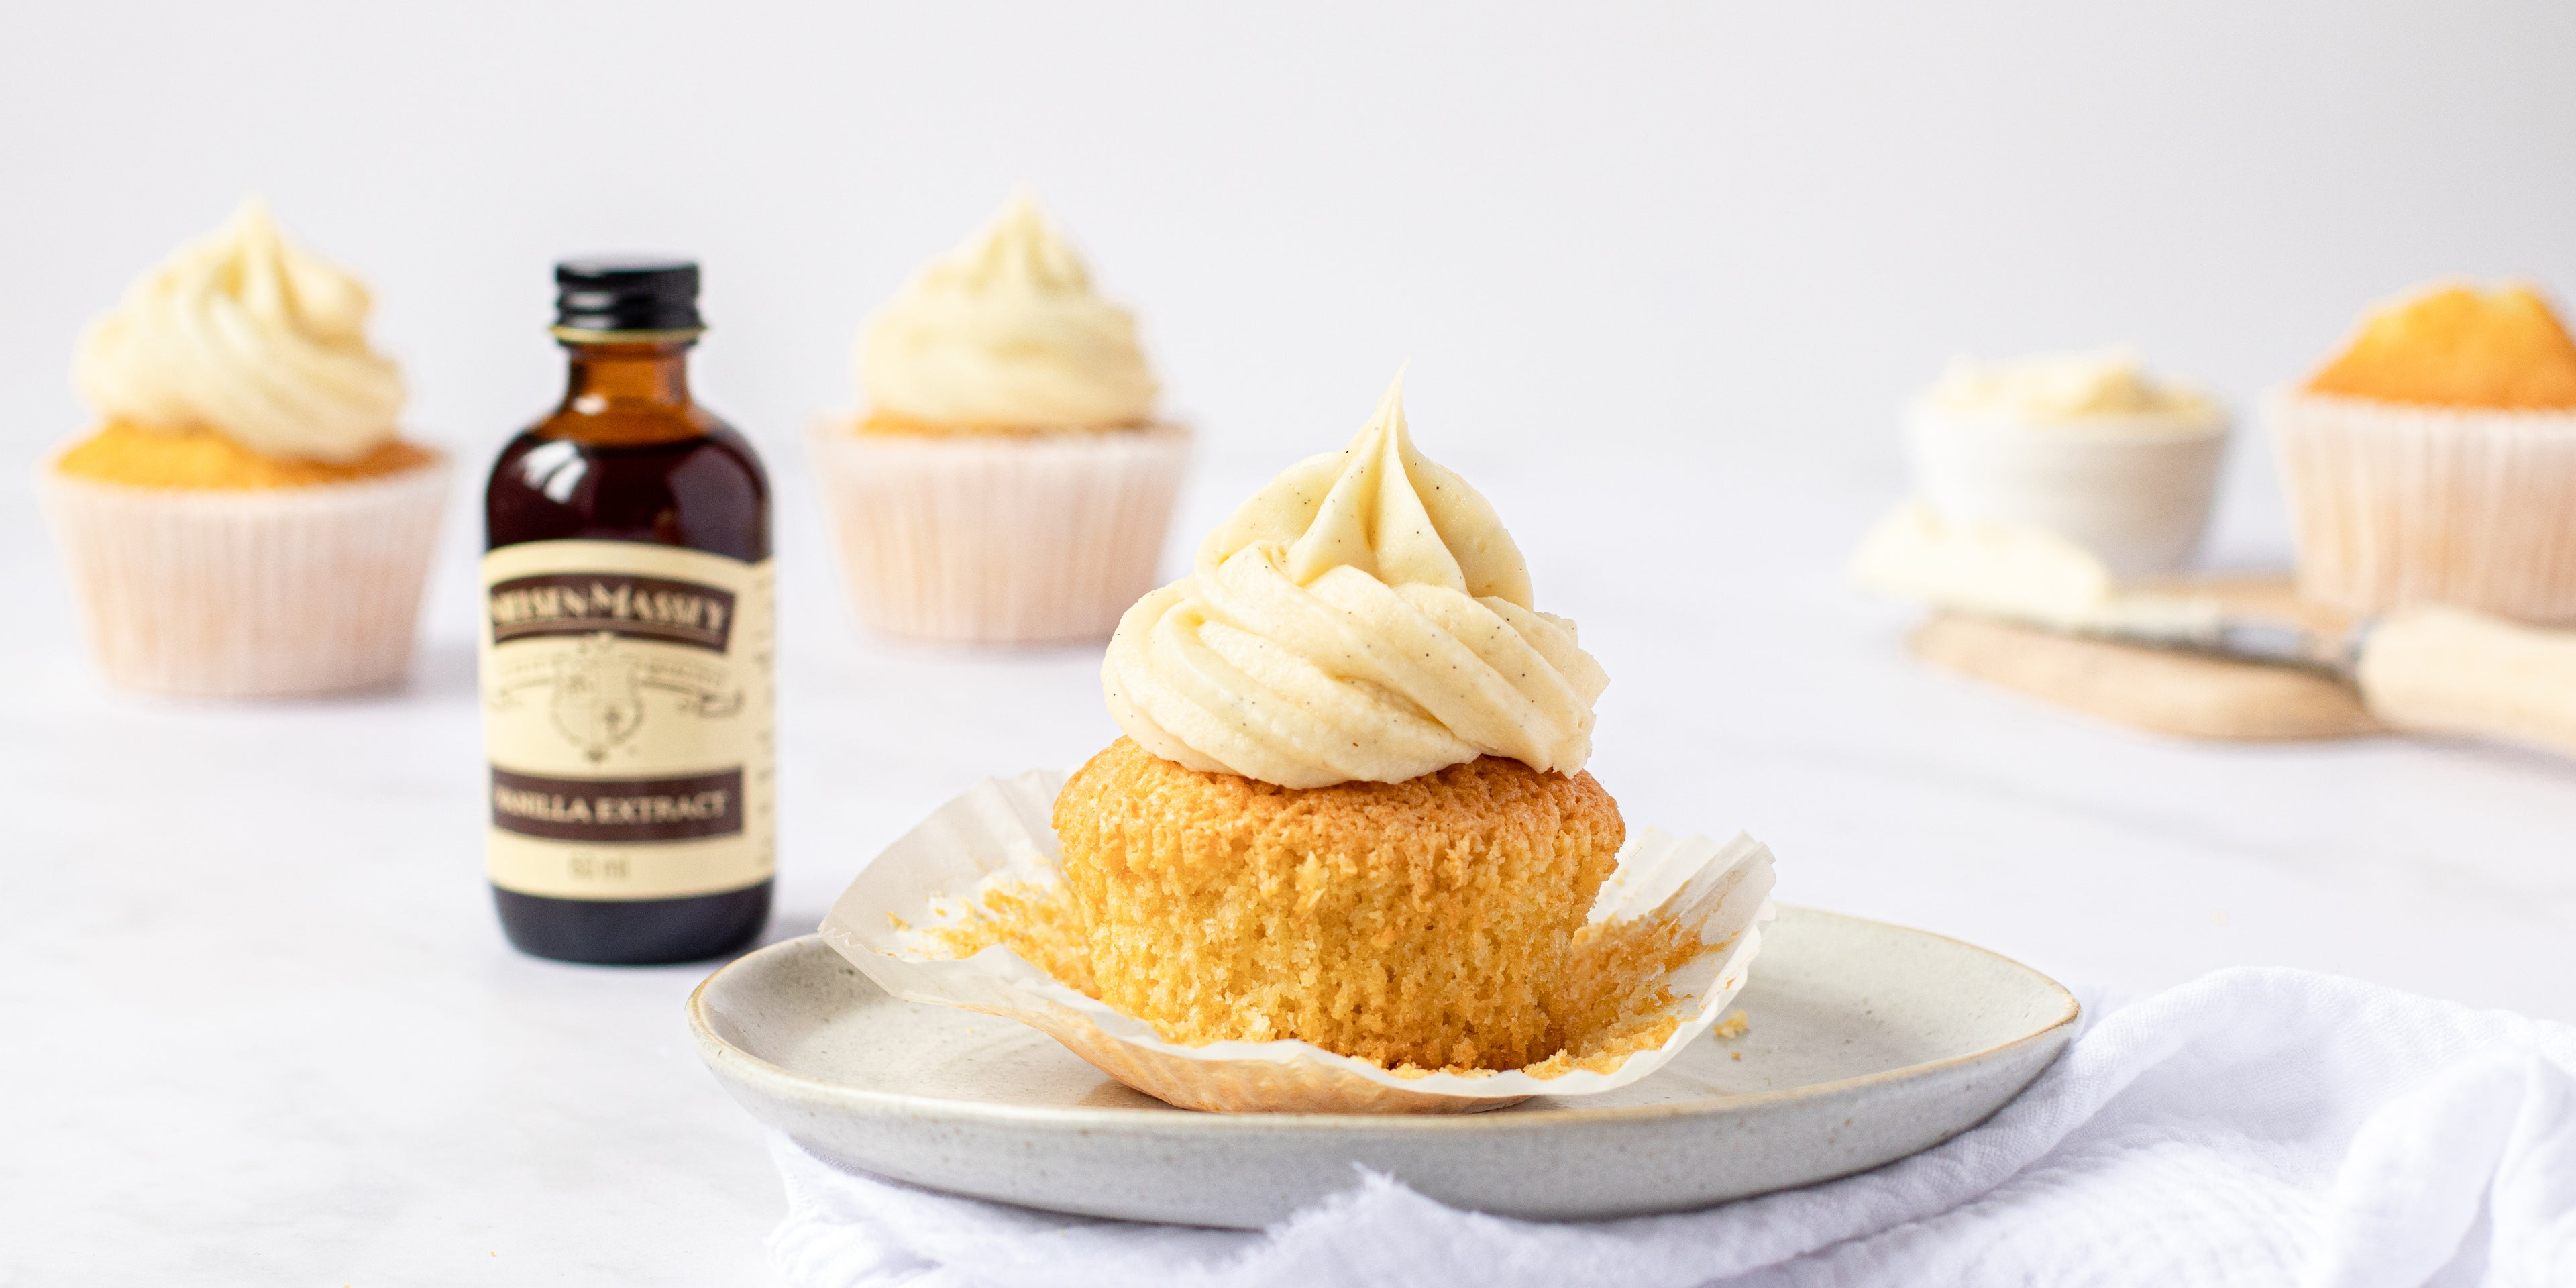 Vanilla cupcake topped with vanilla buttercream and a bottle of vanilla extract to the left